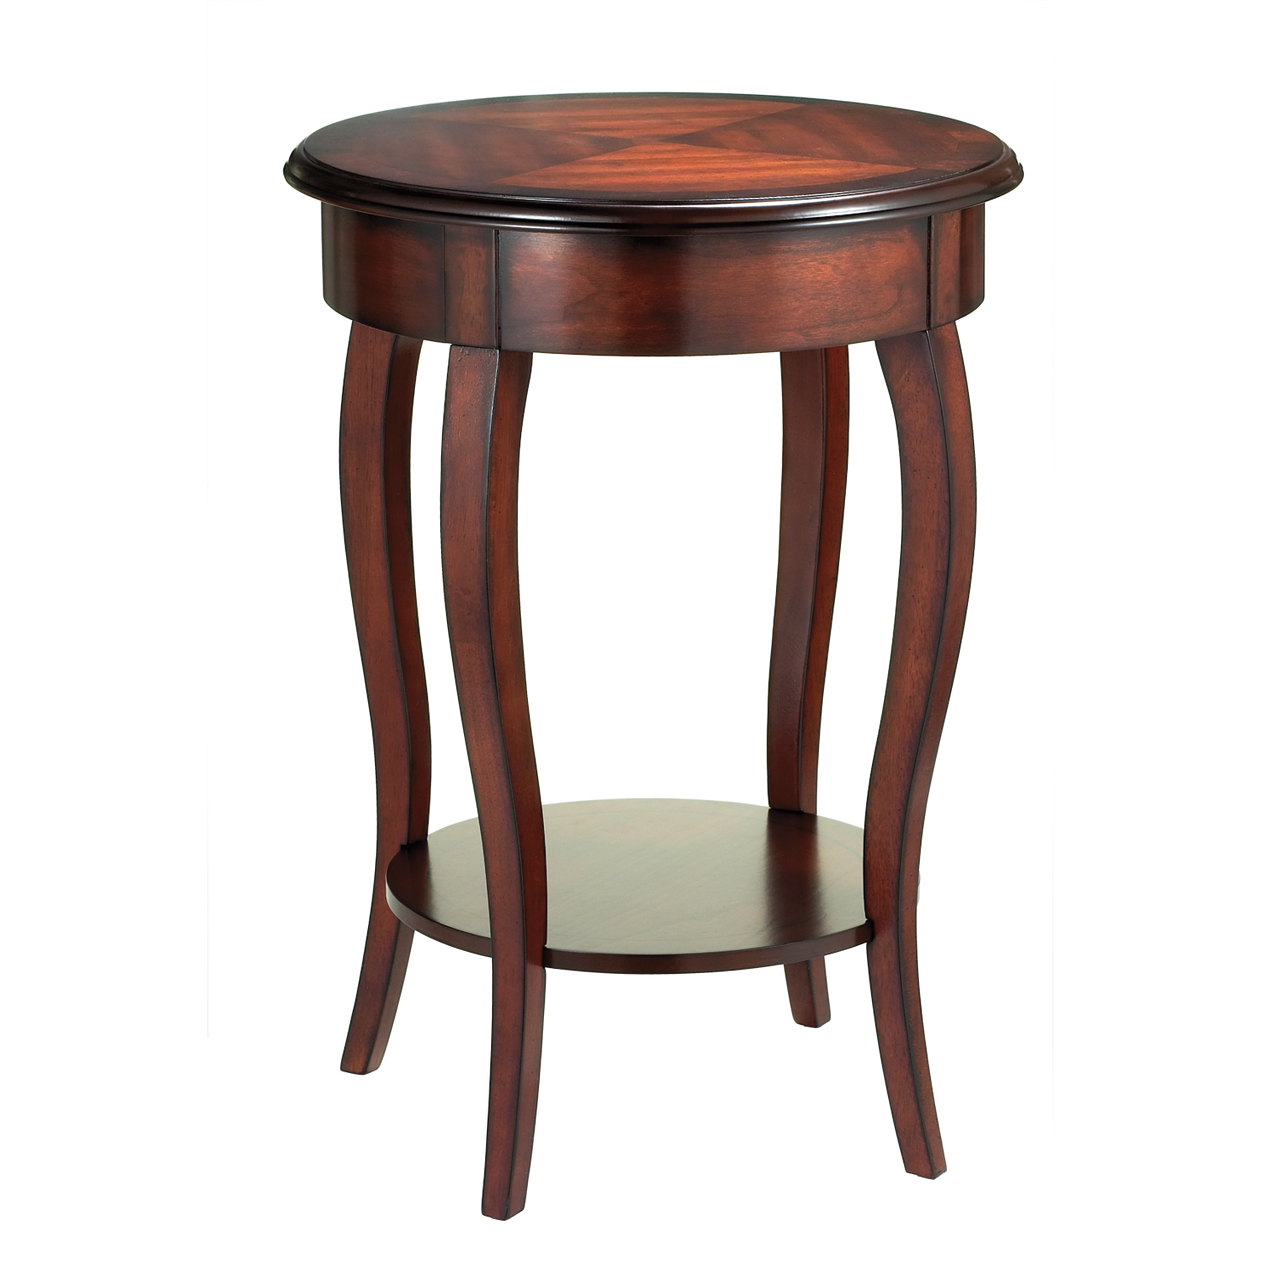 ashford side table bombay orange accent company marble top tables outdoor chairs white round west elm desk bar height with leaf nautical black and umbrella long skinny console